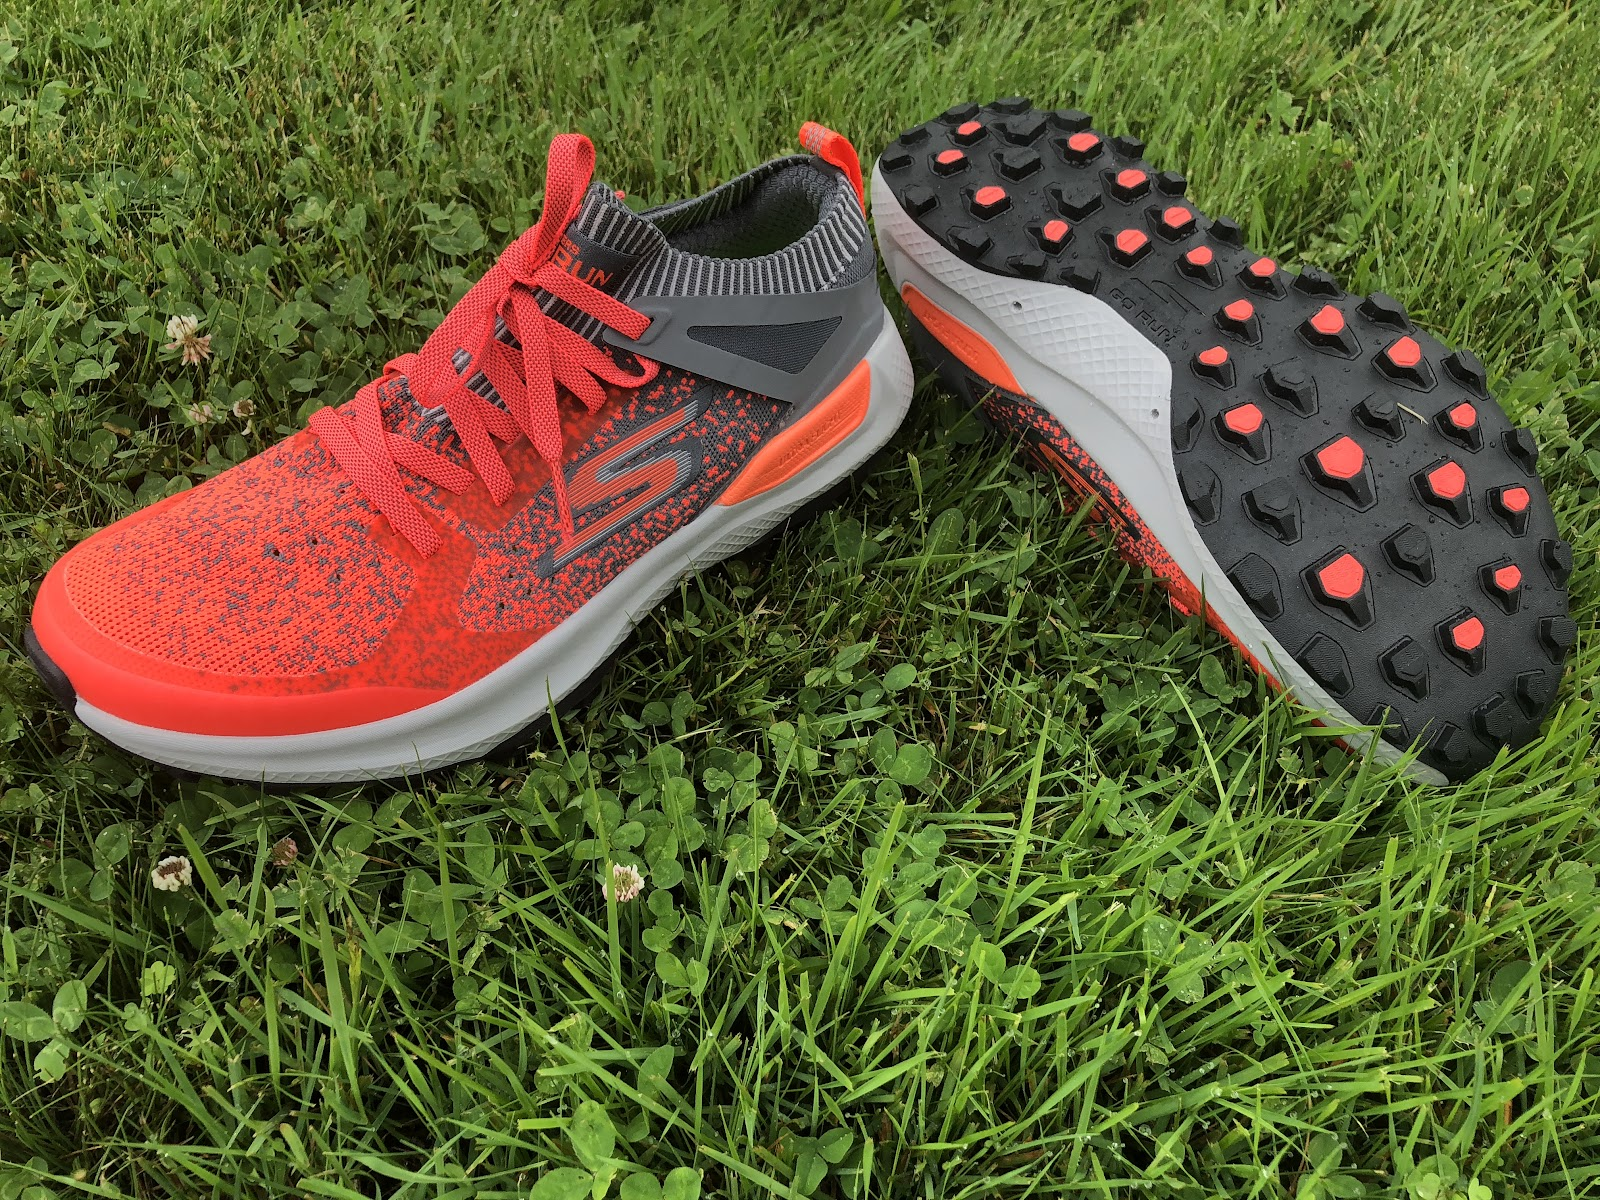 Skechers GOrun ULTRA Fonctionnement chaussures Review » Believe in the Run